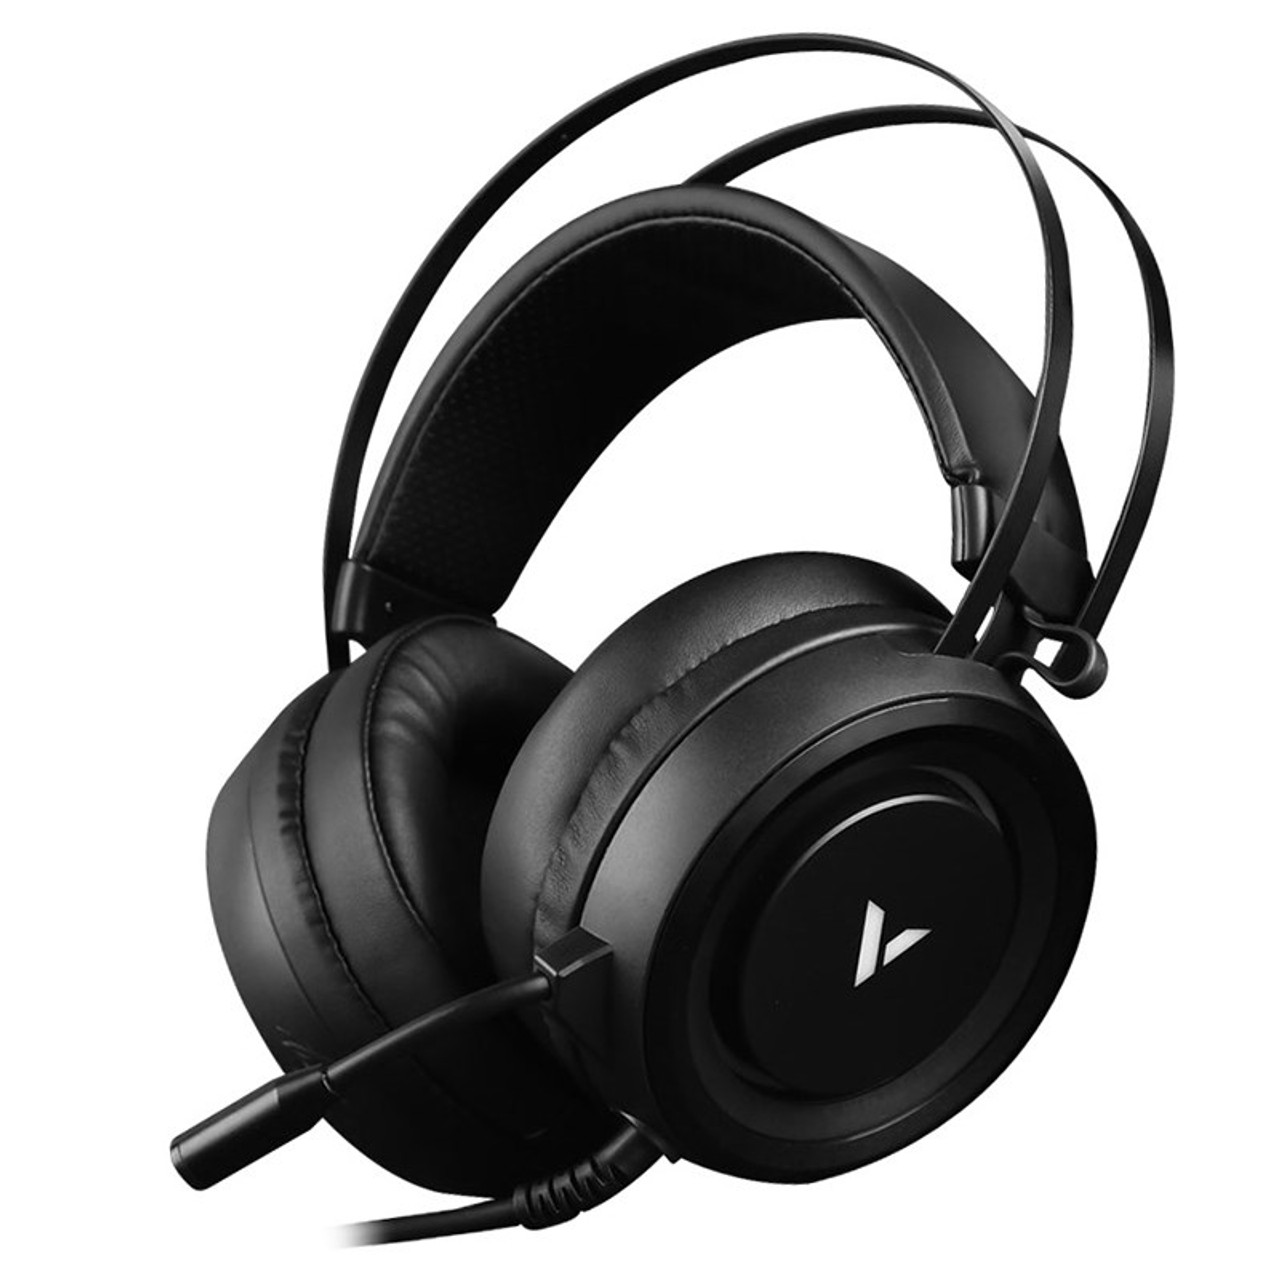 Image for Rapoo VH500 Illuminated RGB Glow Virtual 7.1 USB Gaming Headset - Black CX Computer Superstore